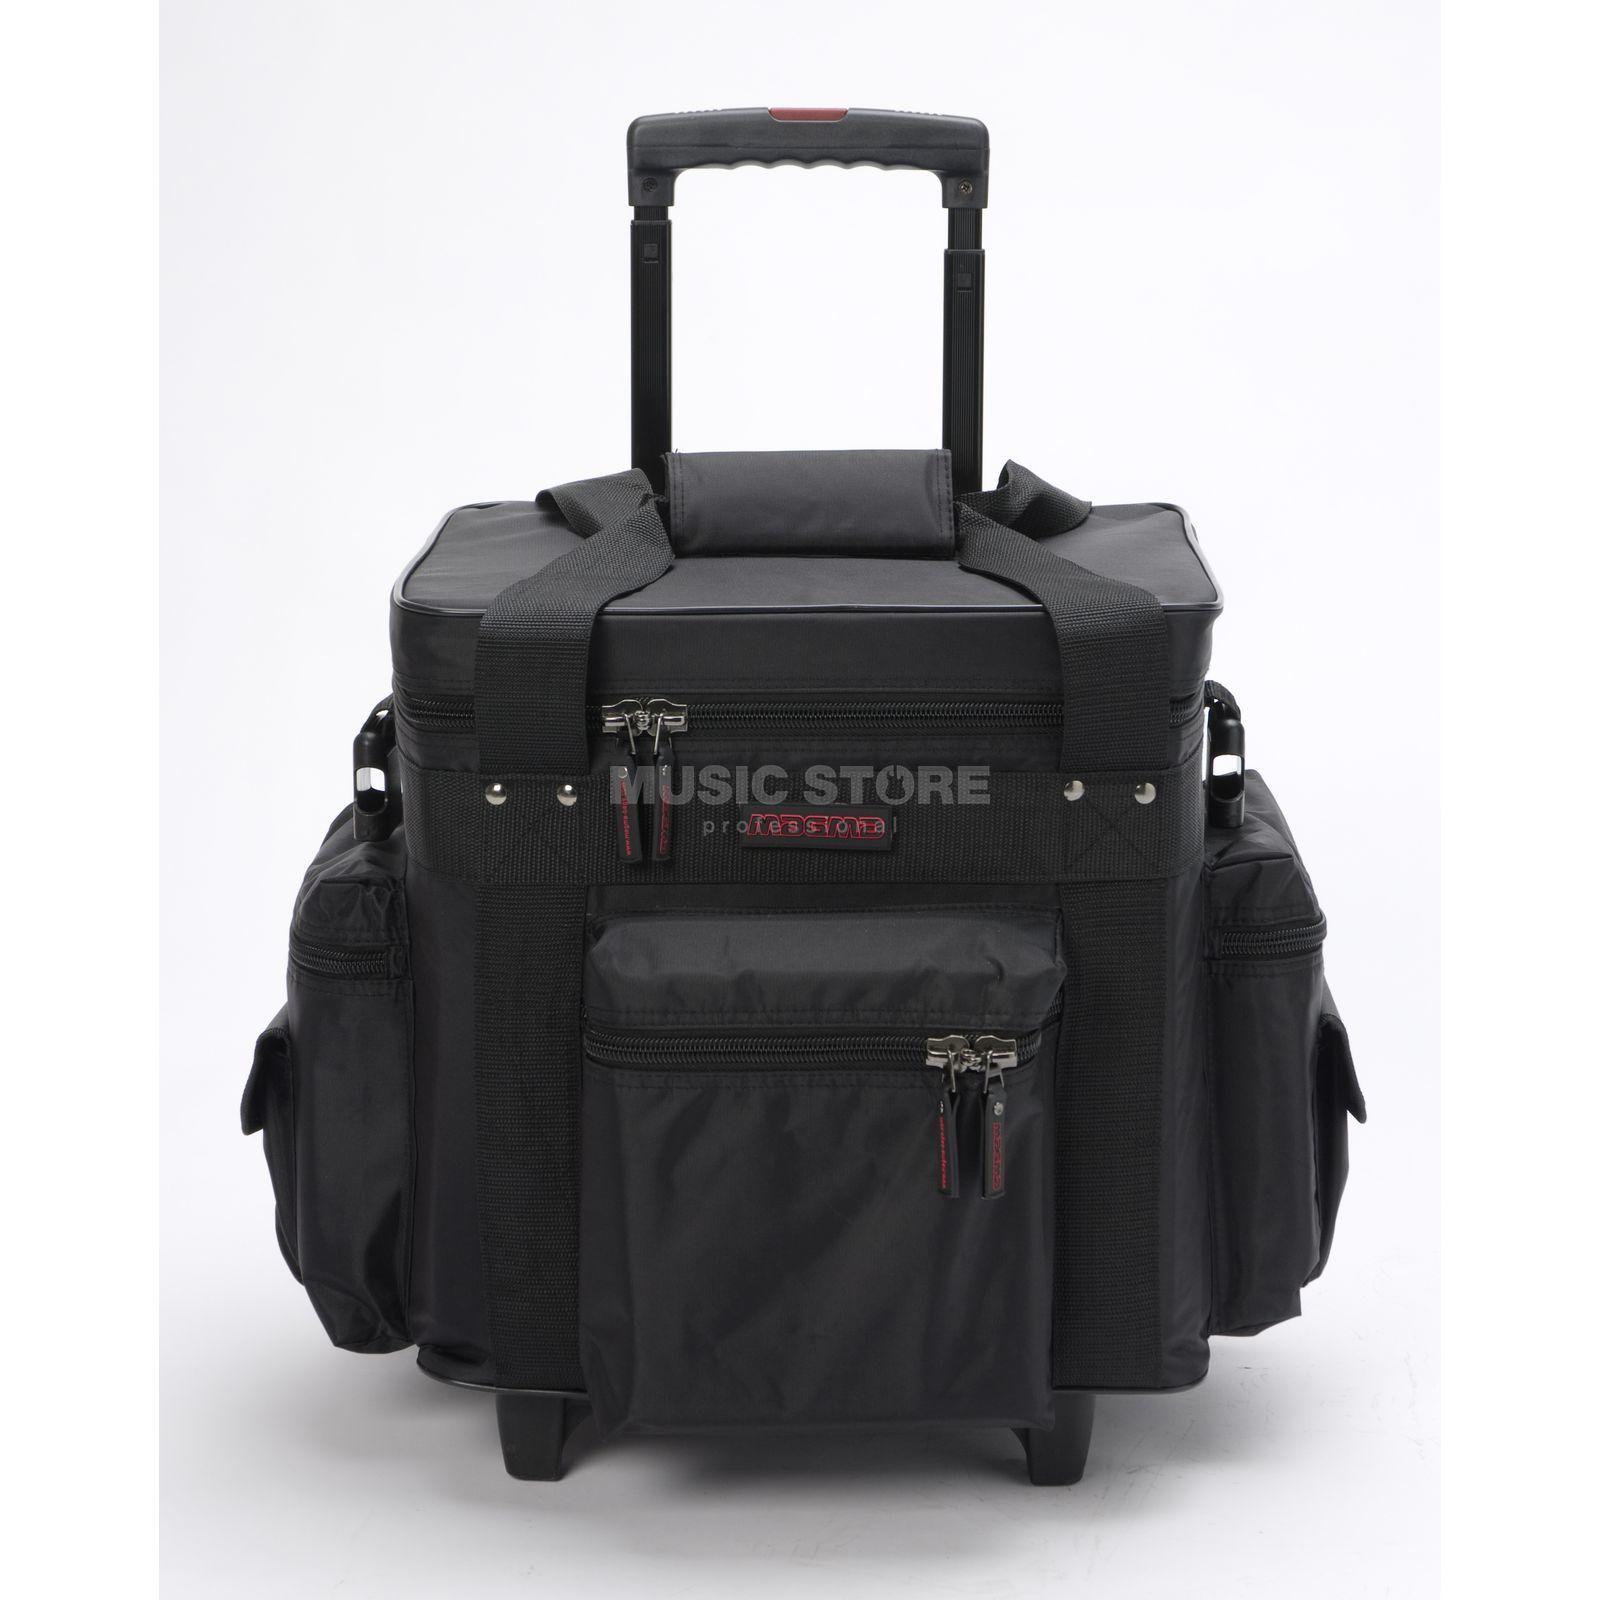 Magma LP-Bag 100 Trolley zwart/zwart  Productafbeelding